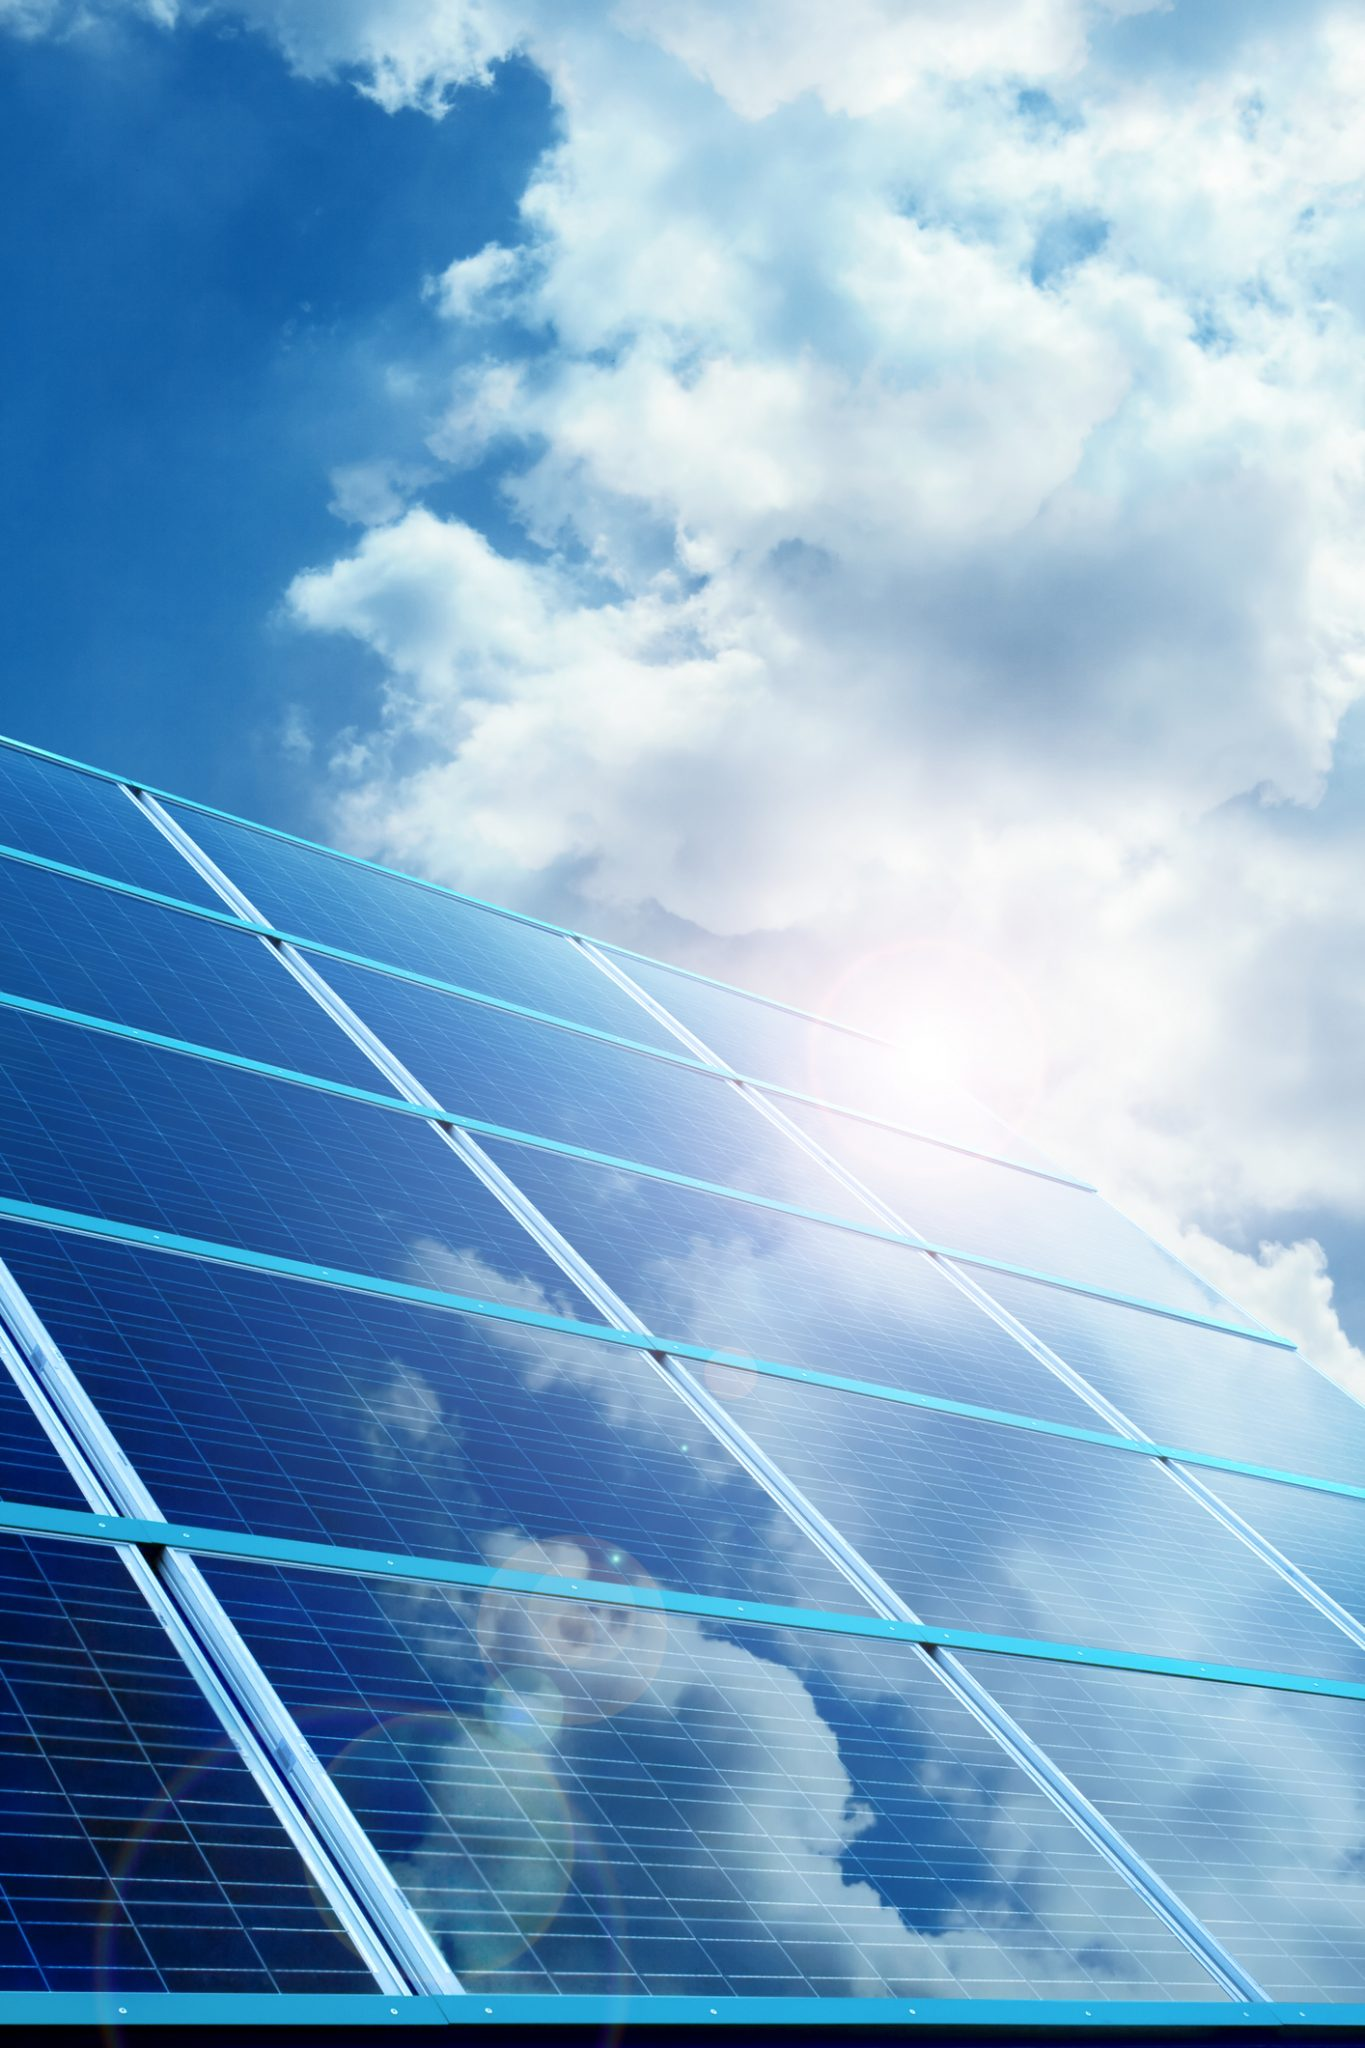 Photovoltaic Is Emerging As A Major Power Source